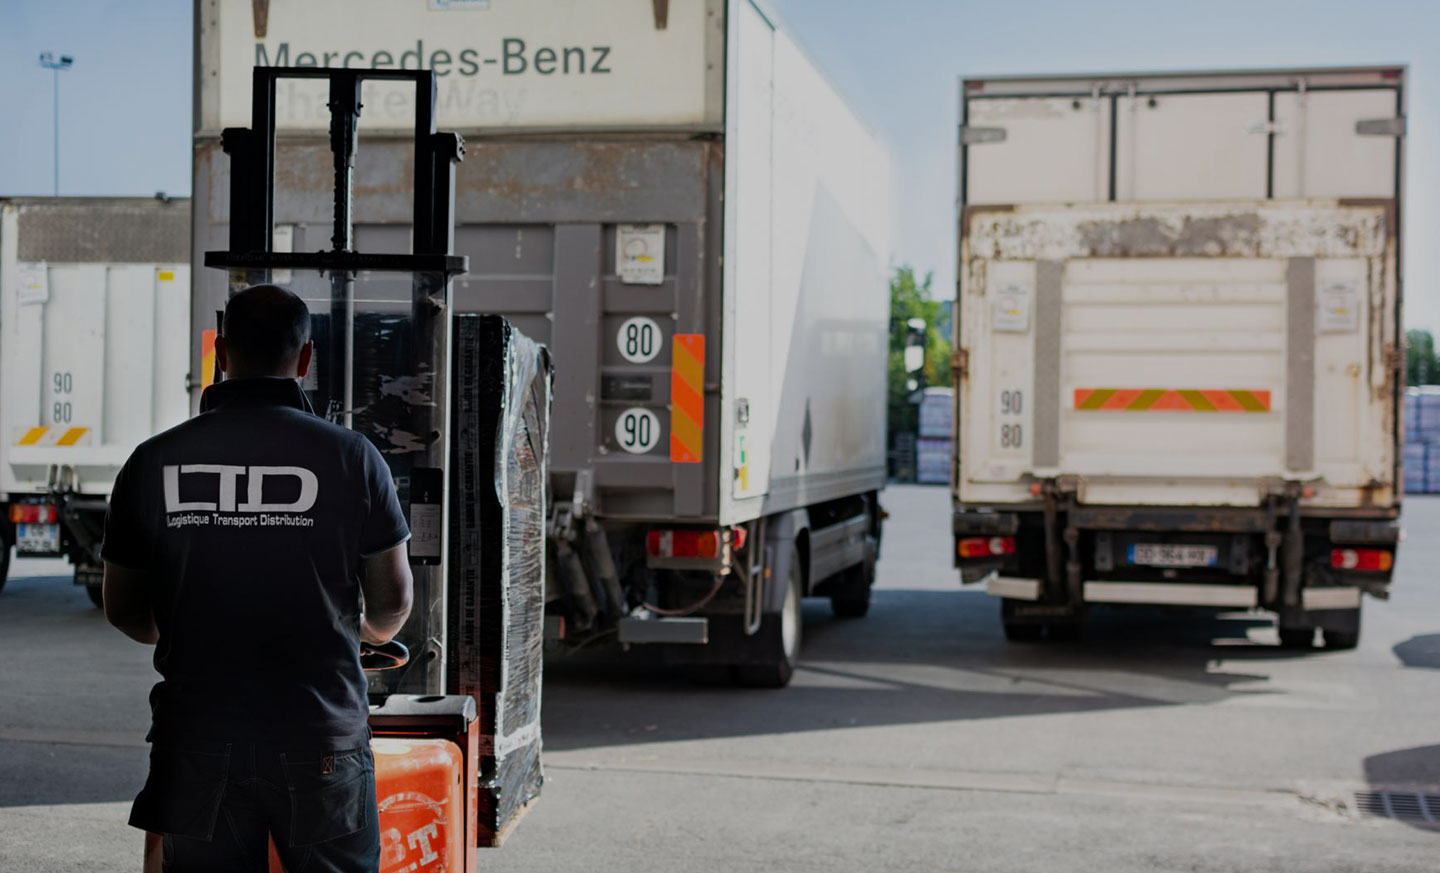 LTD Logistique Transport Distribution